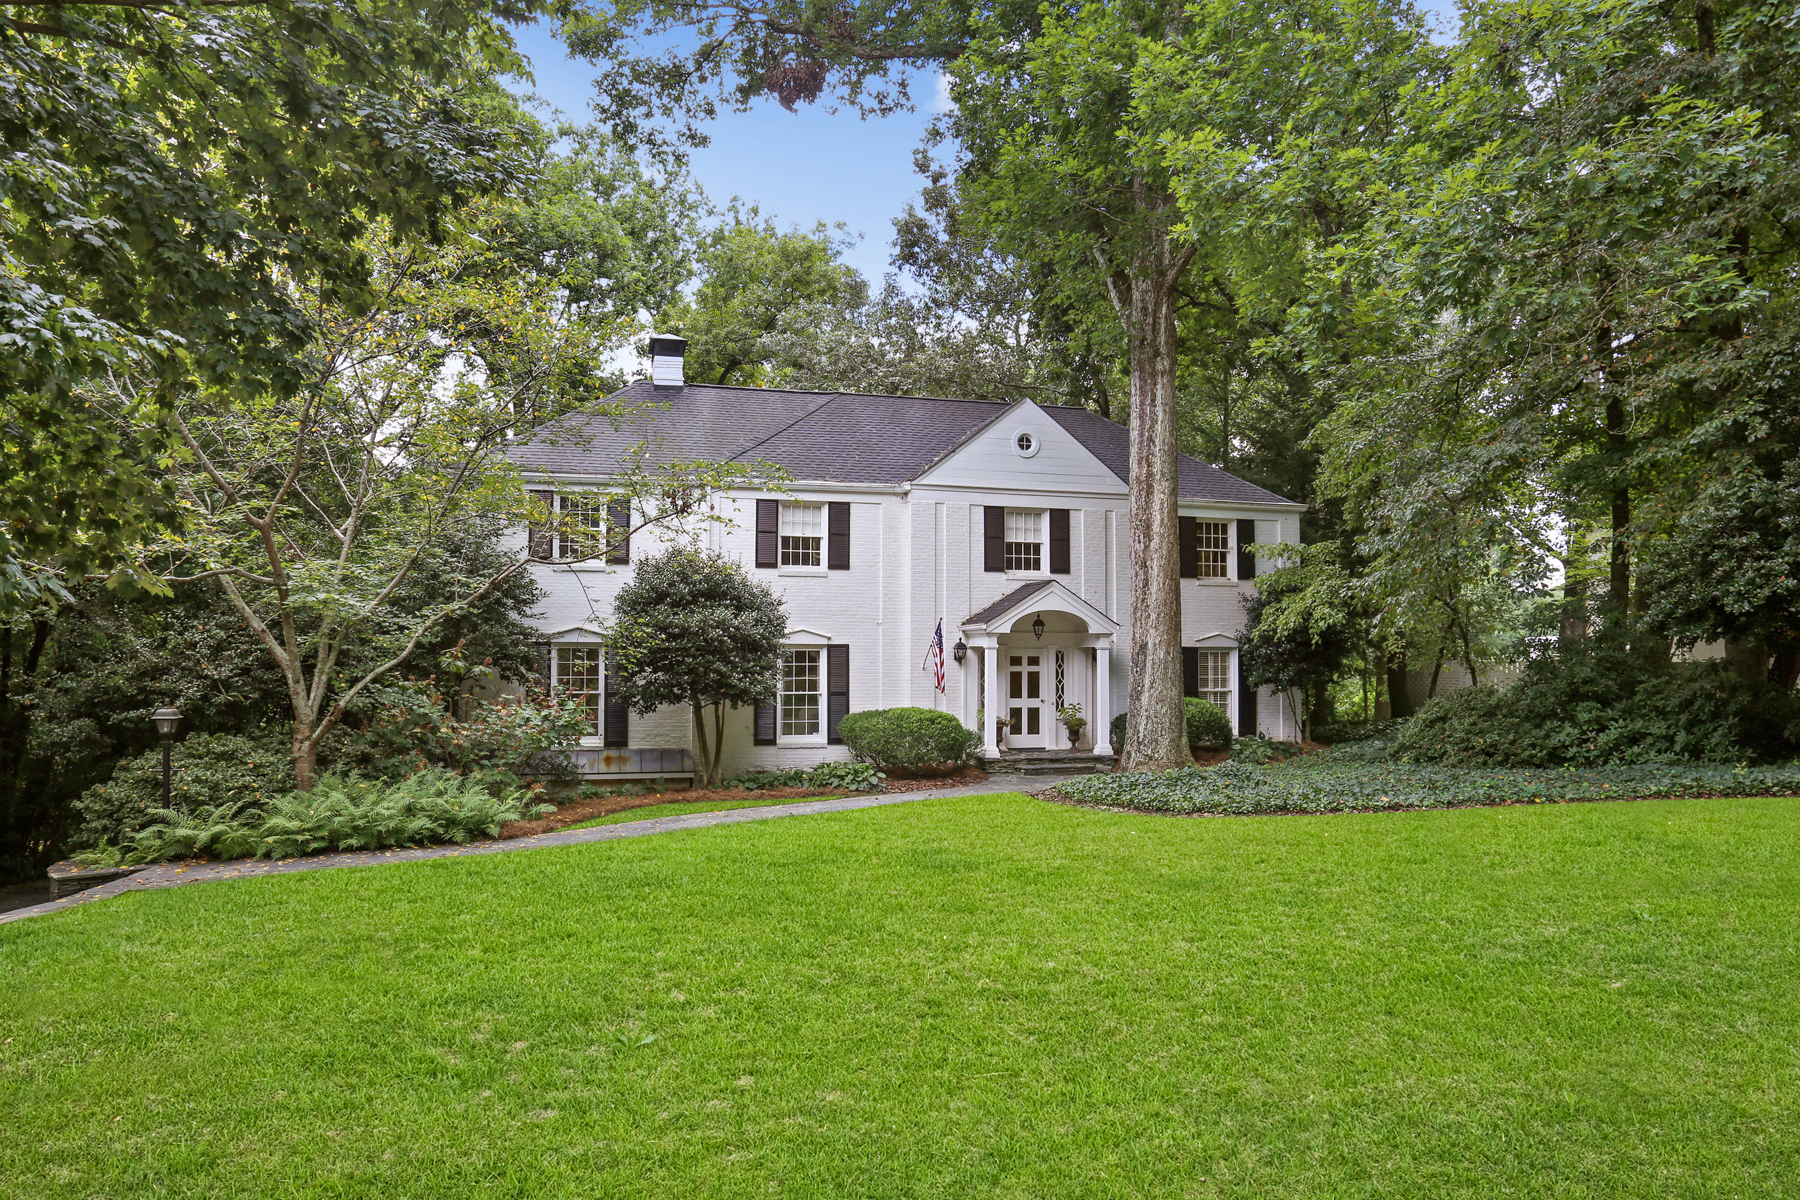 Single Family Home for Sale at Charming Historic Home With Modern Updates 570 Westover Drive NW Atlanta, Georgia 30305 United States